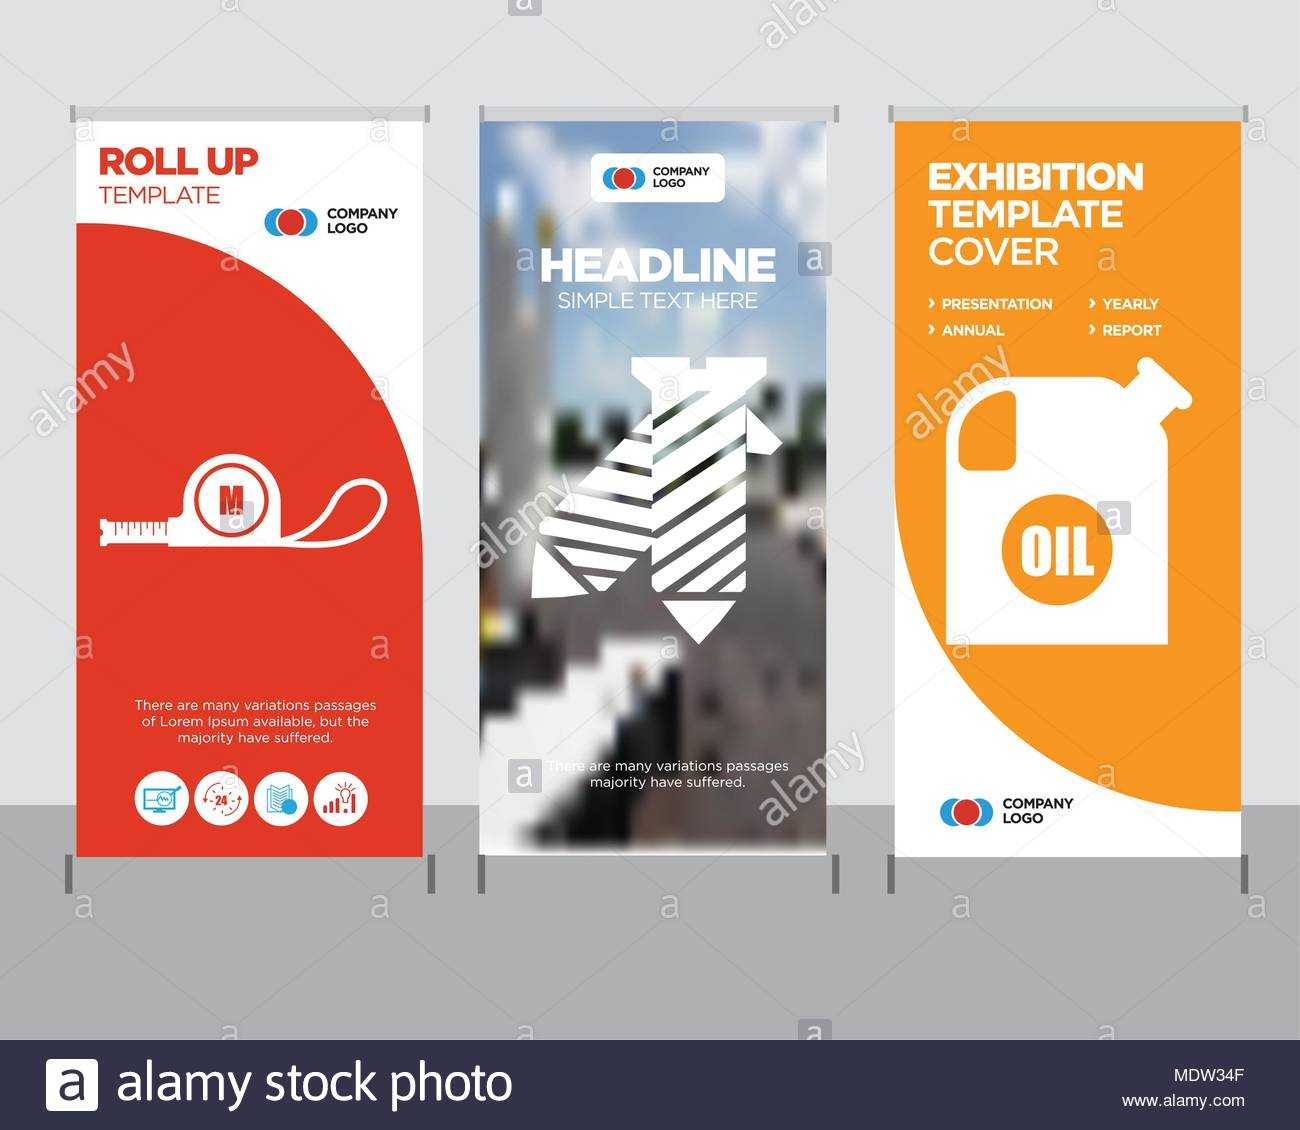 Oil Container Modern Business Roll Up Banner Design Template Pertaining To Tie Banner Template